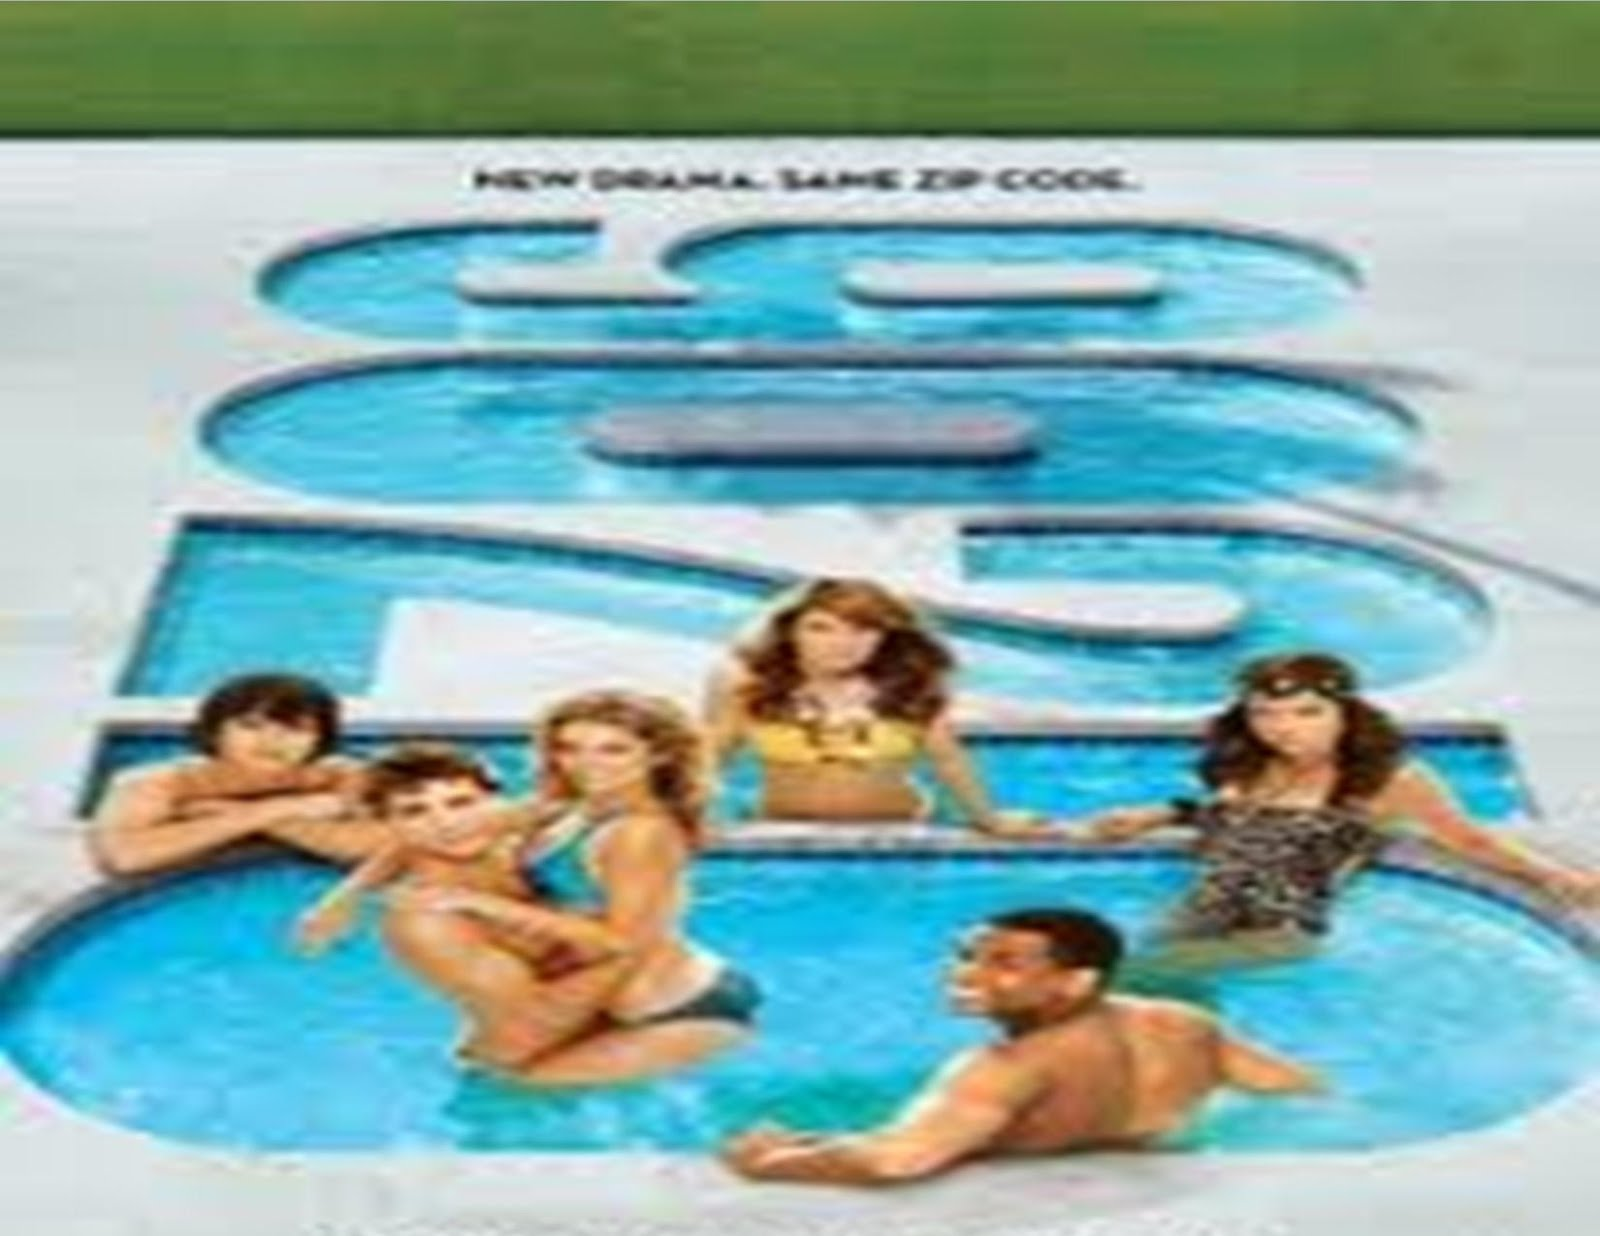 90210 season 4 episode 1 watch online free